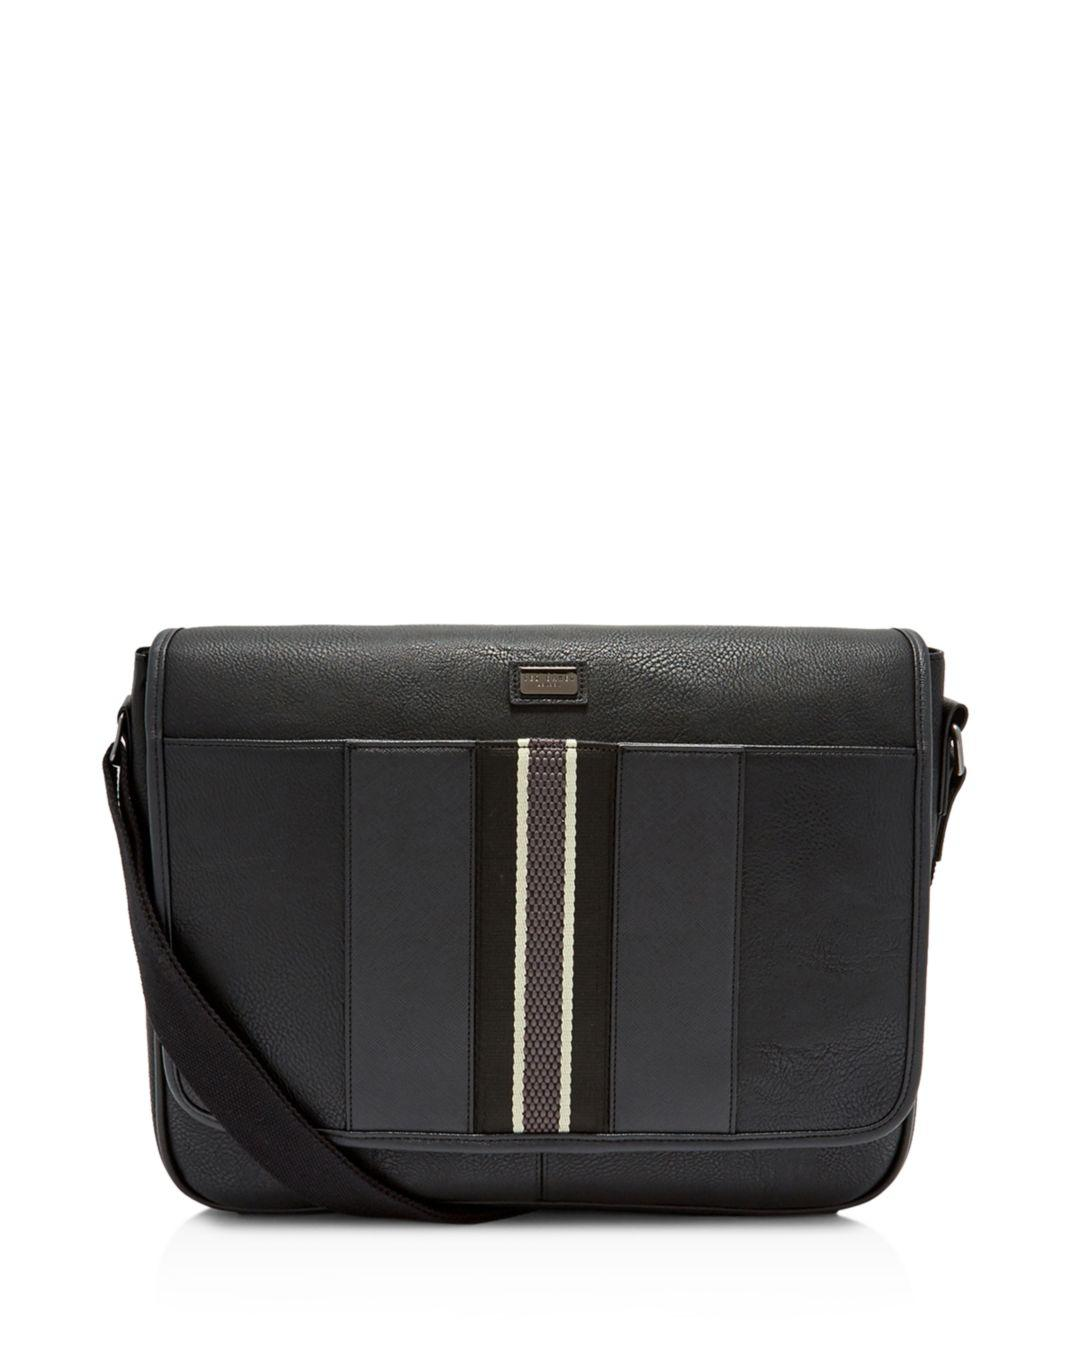 63721152d89f Lyst - Ted Baker Pollo Webbing Despatch Bag in Black for Men